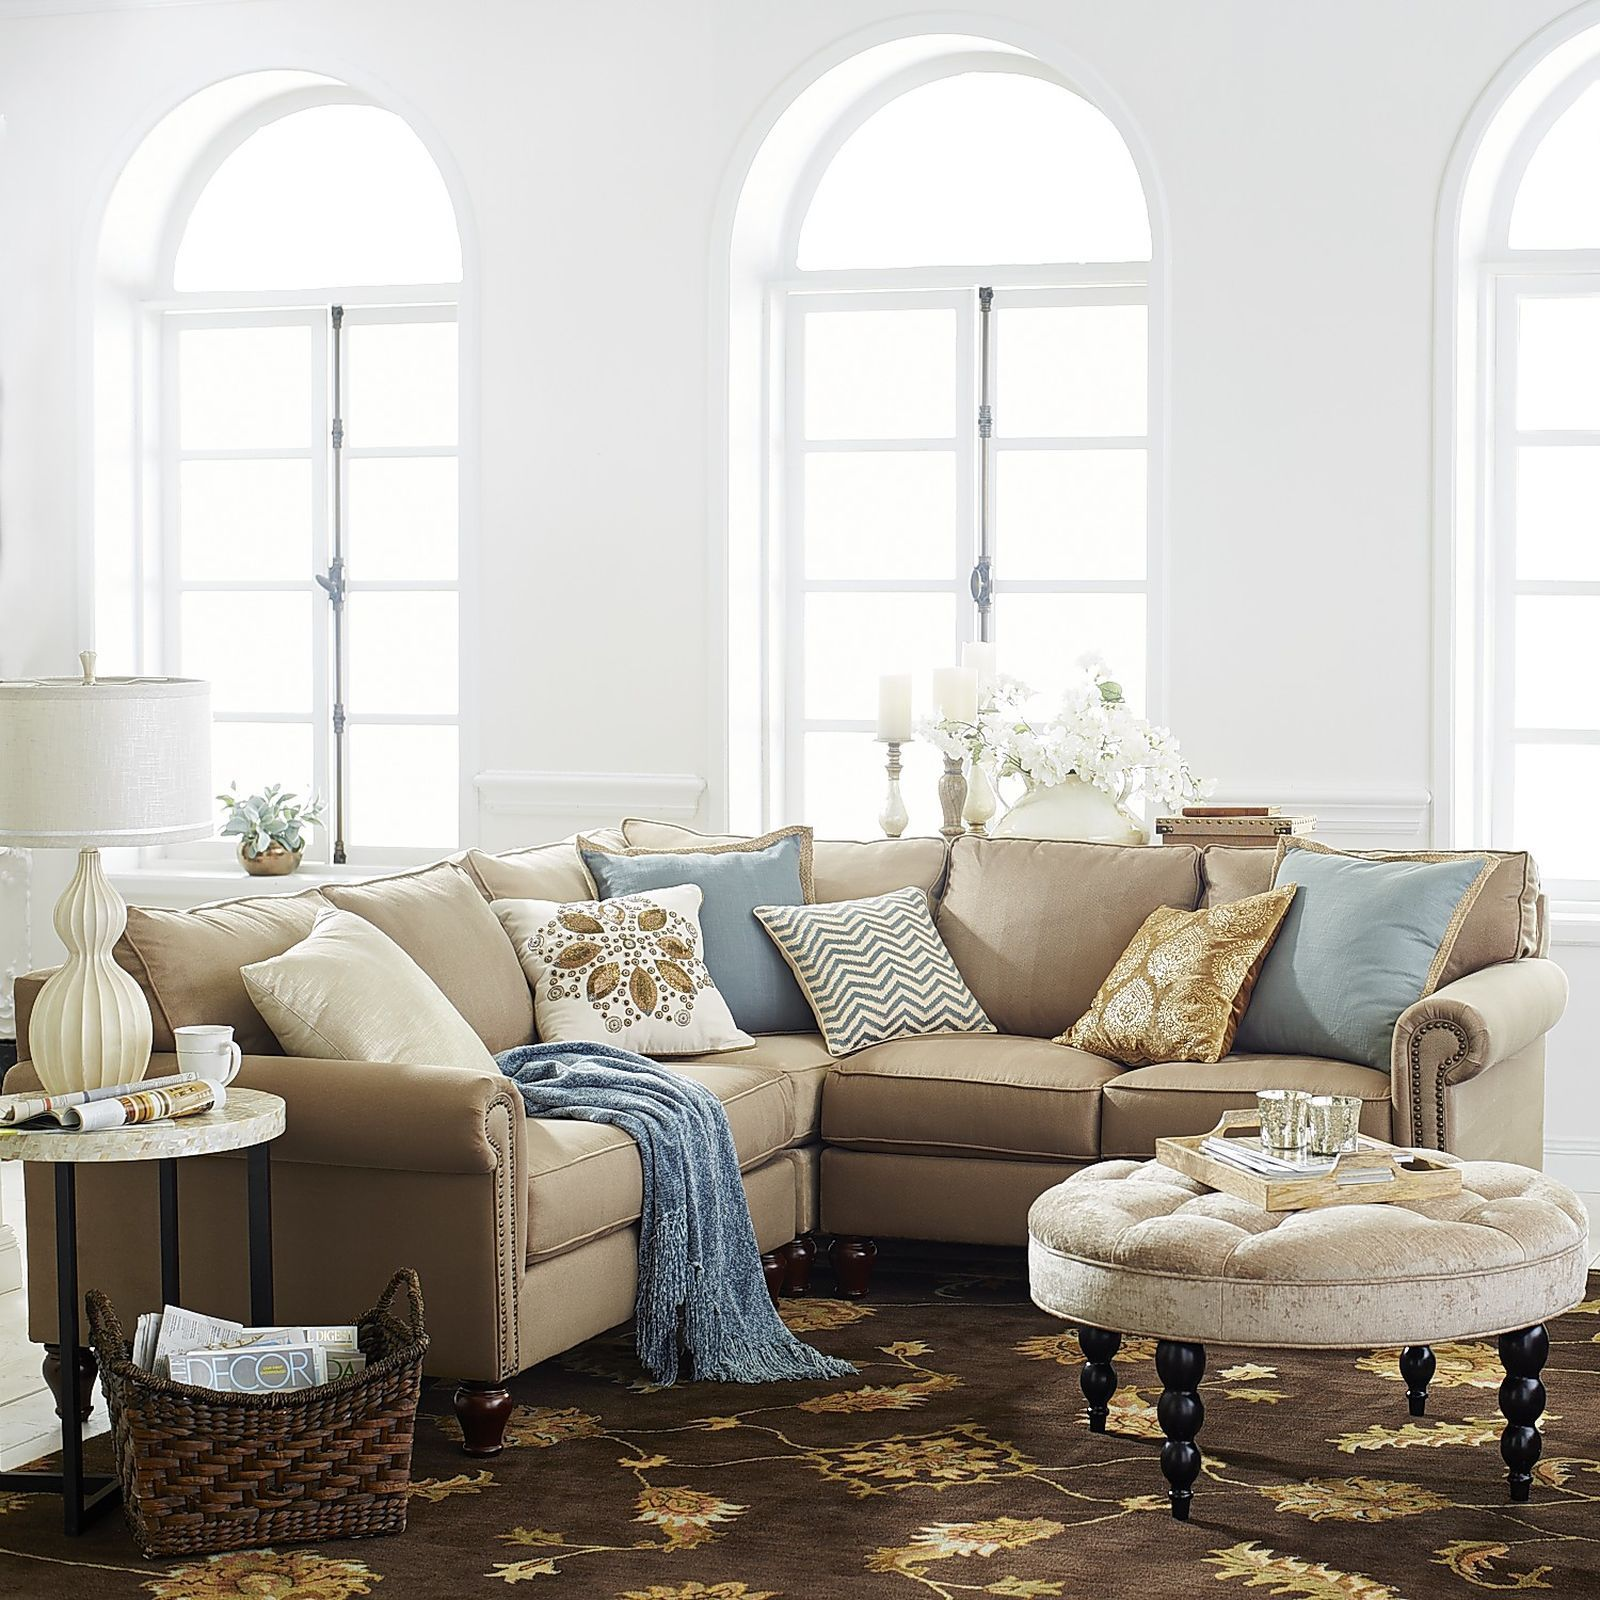 Build Your Own Alton Tan Rolled Arm Sectional Collection | Sectional ...